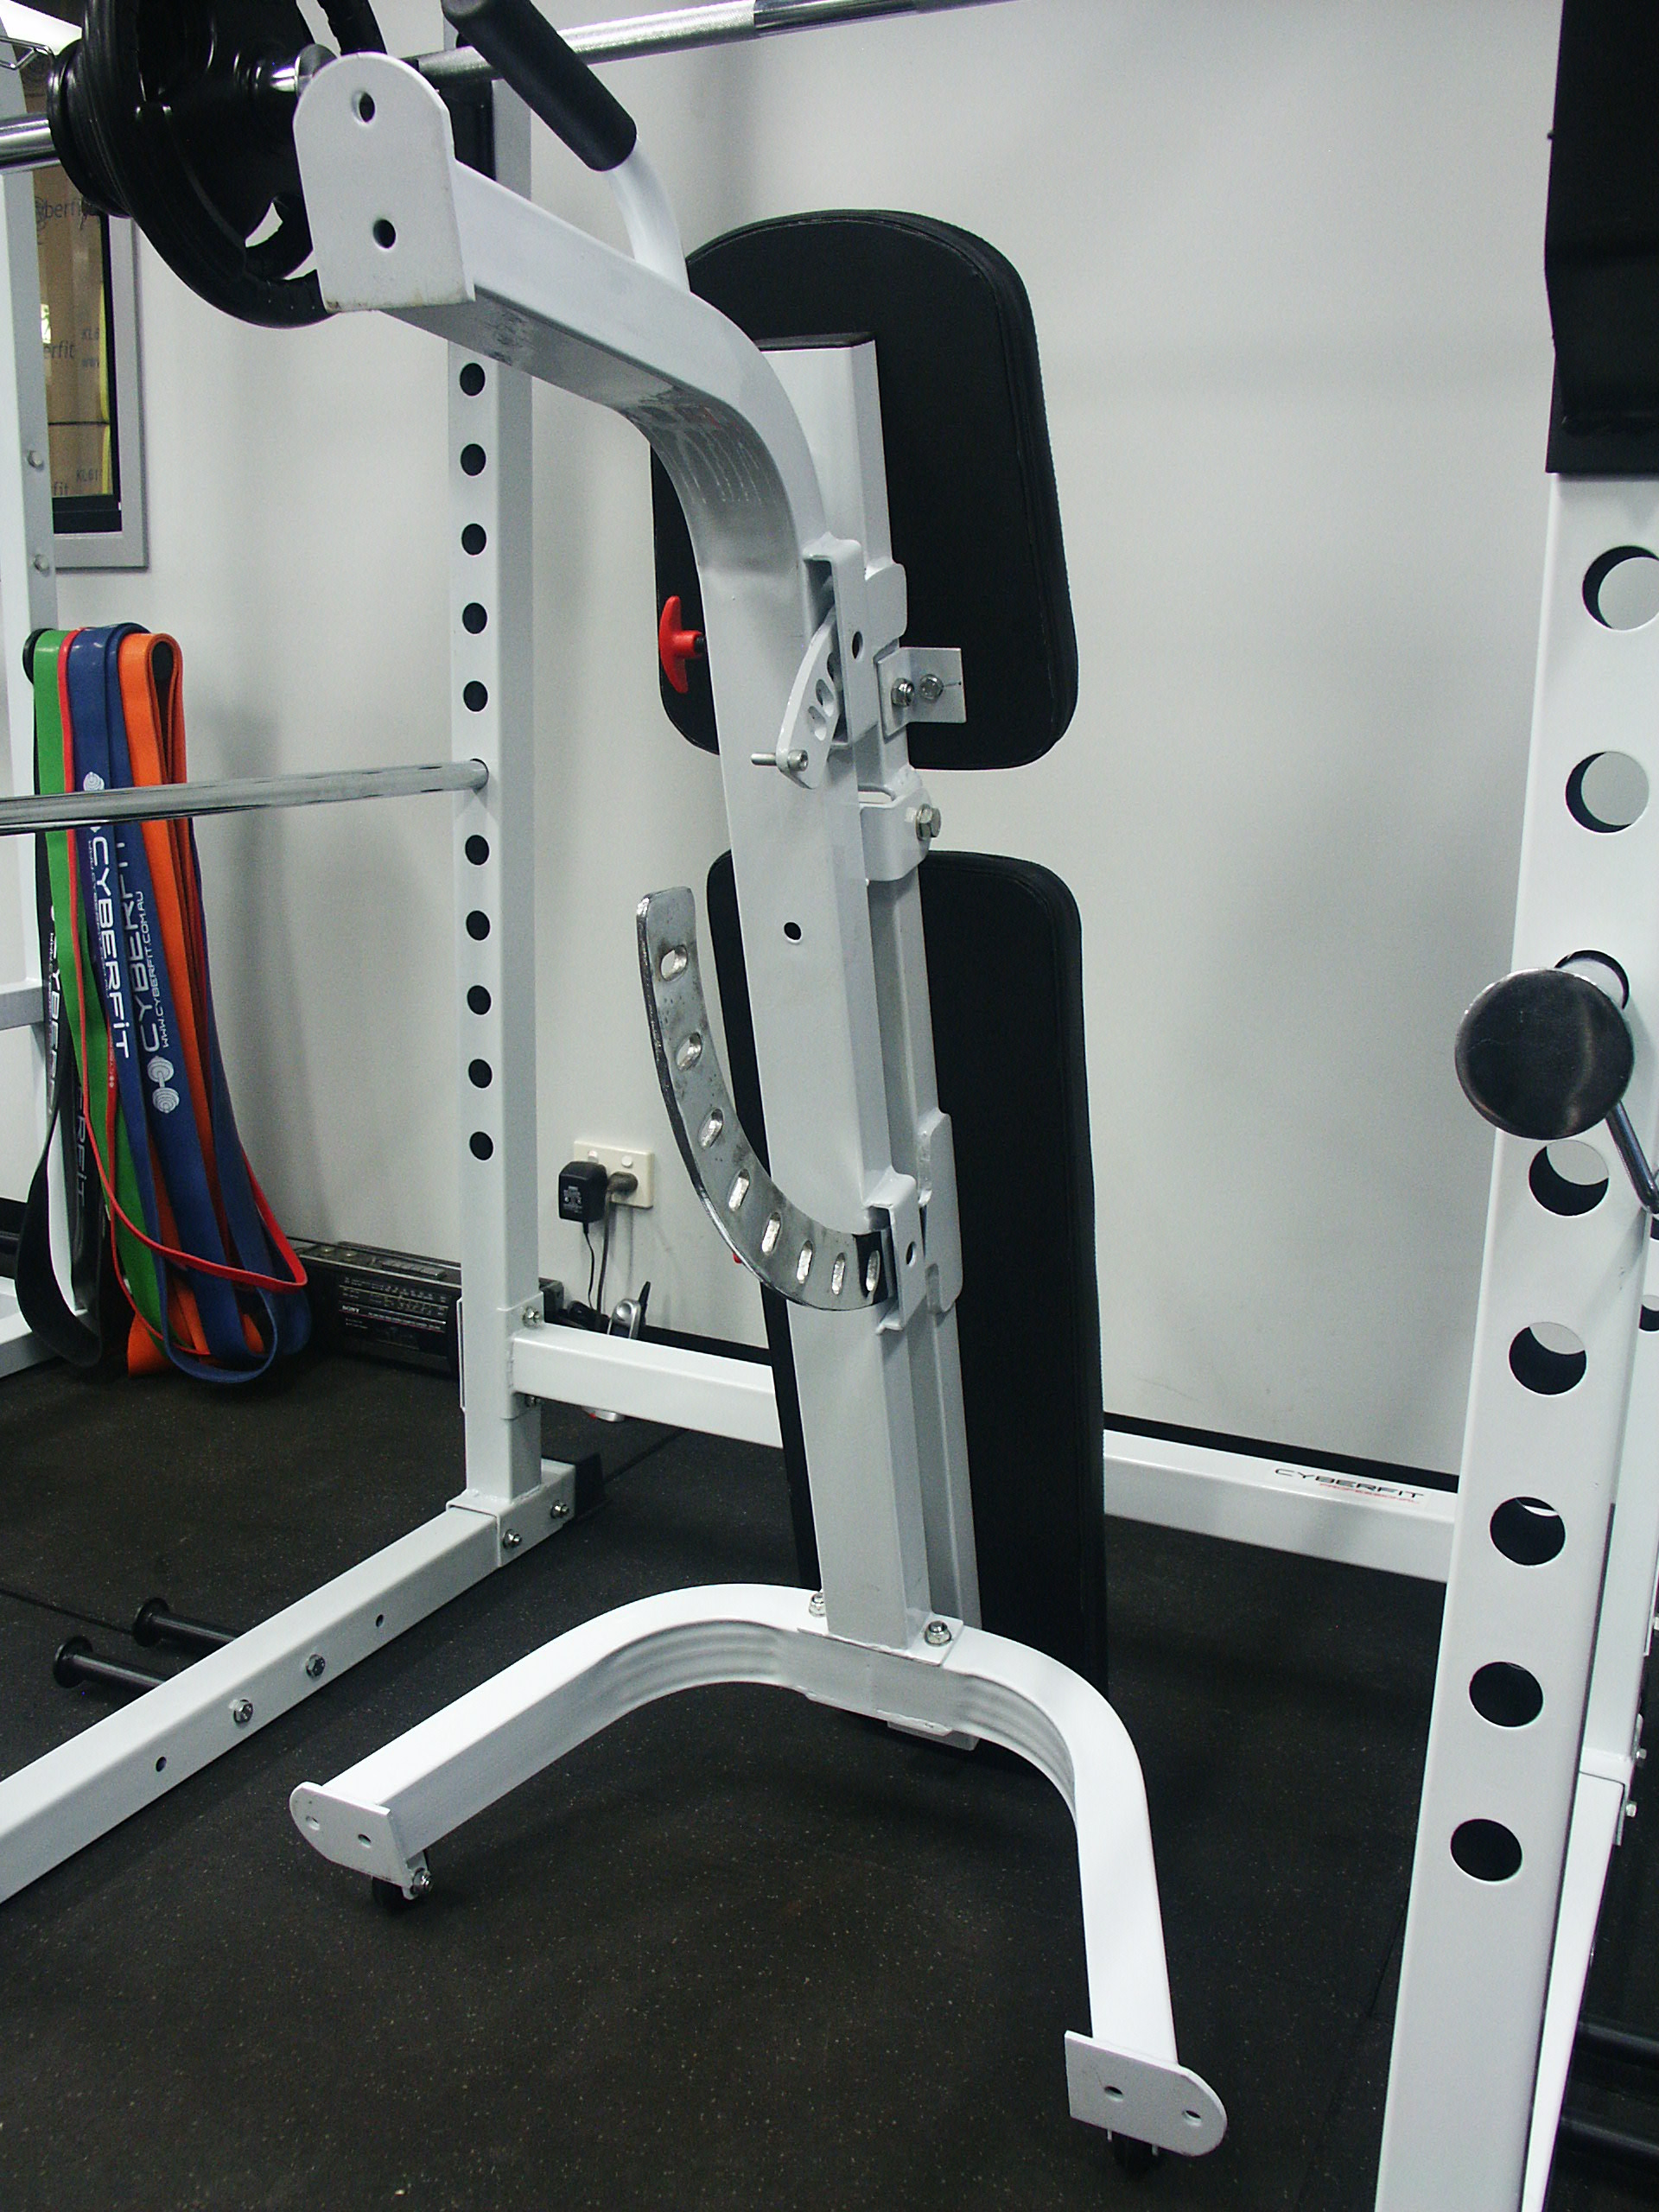 diy wooden gym things rack zuhause design what of power all is homemade a inspiration squat